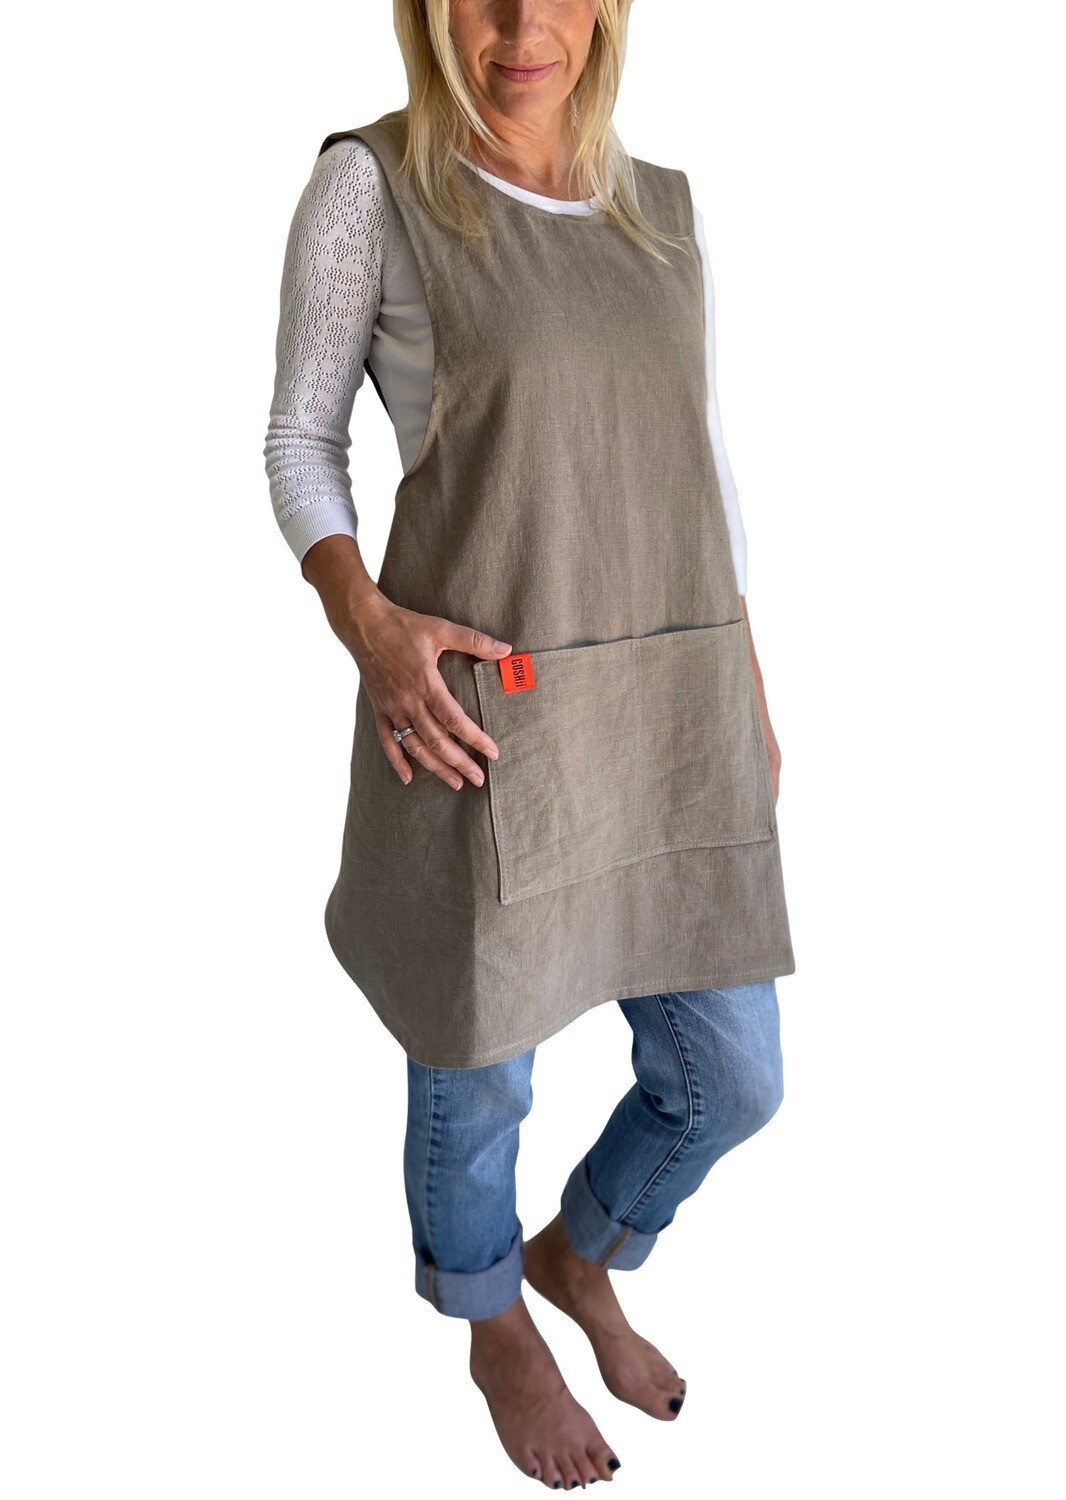 Japanese Crossover Apron Ladies Sml/Med - Linen